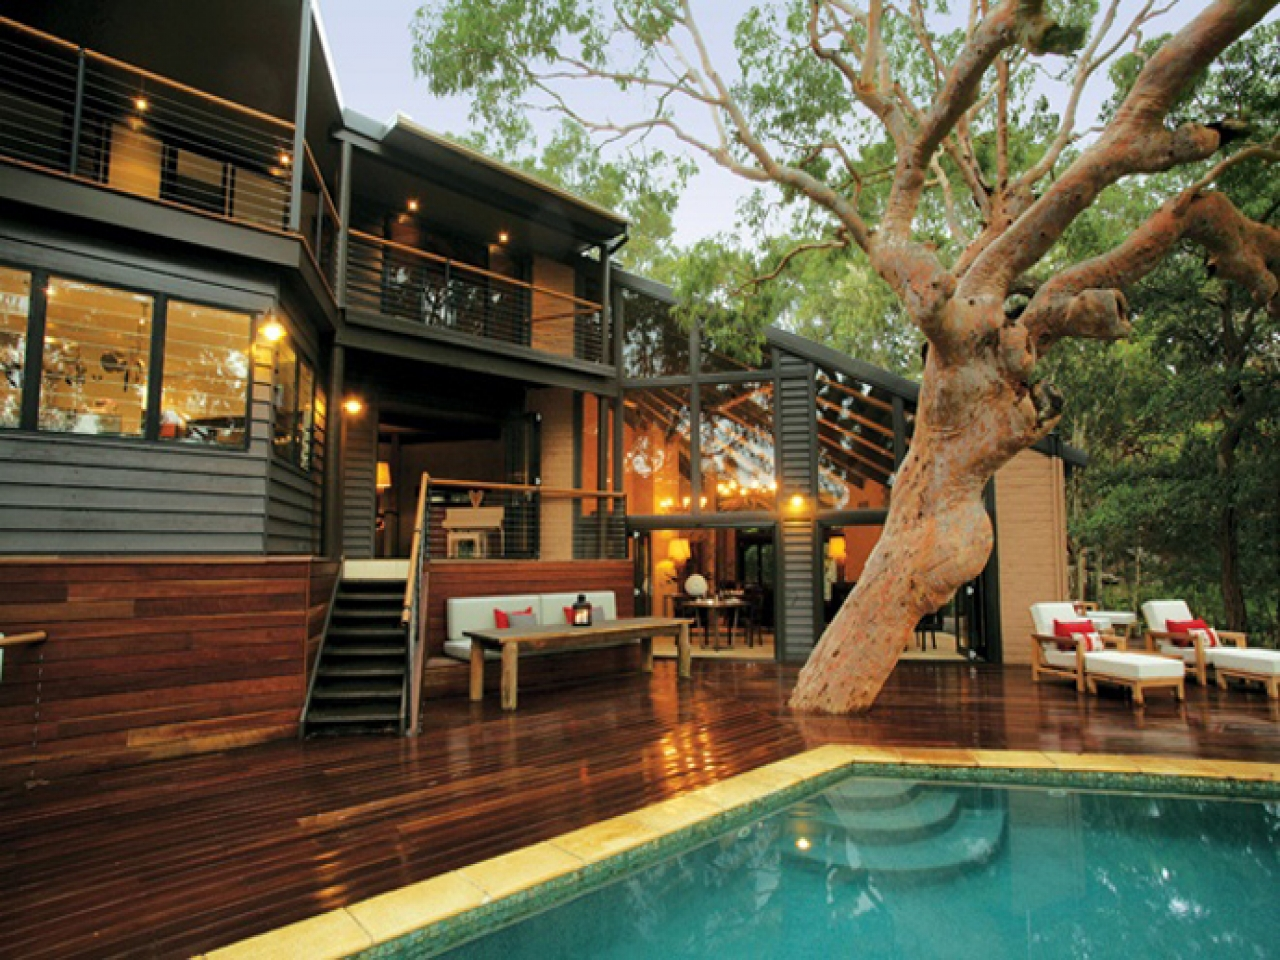 coolest-beach-houses-australia-beach-house-lrg-0d80d6a585bf43a0 Meier Florida House Plans on florida art, two story stucco homes plans, insulated concrete forms home plans, floor plans, florida luxury house, florida style mansion, florida vernacular building, florida house ideas, small stilt home plans, non-traditional home plans, florida with pool house, georgia southern home plans, florida watercolor map, florida house decorating, florida style architecture, elevated waterfront home plans, luxury home plans, simple one level home plans, florida beach houses, florida house plants,